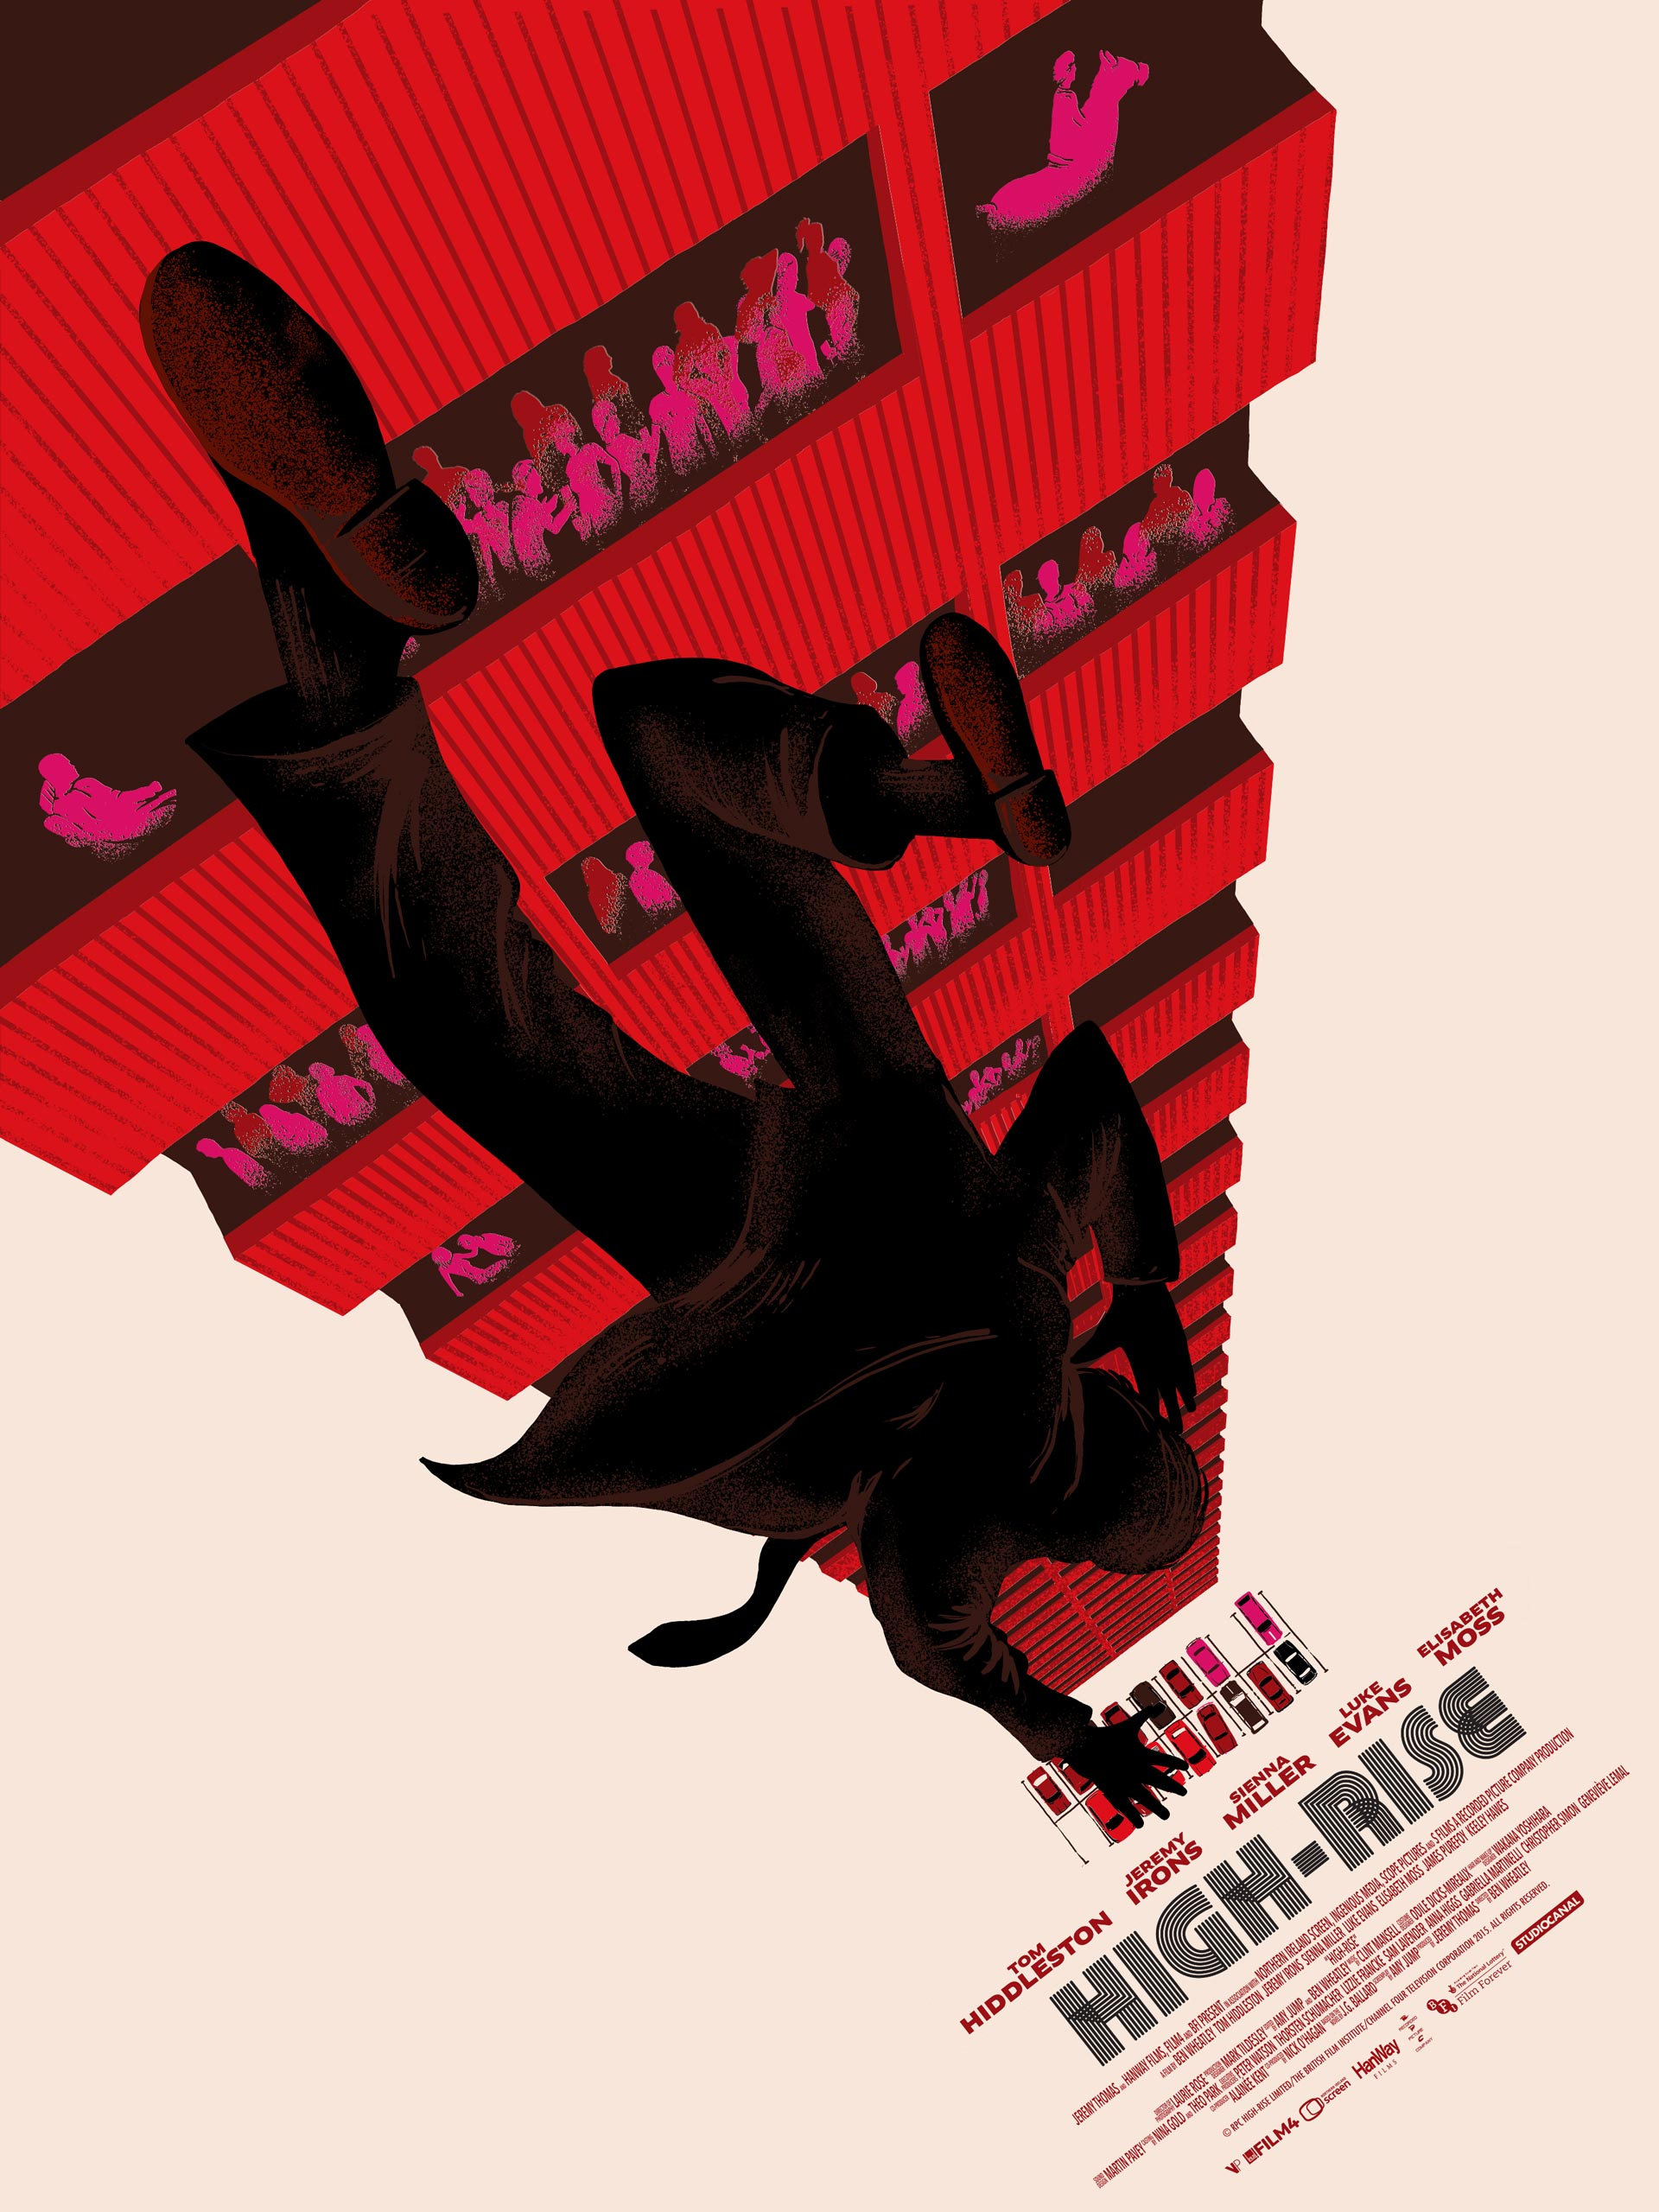 Vice Press Reveal New Raid 71 Artwork for Ben Wheatley's High-Rise